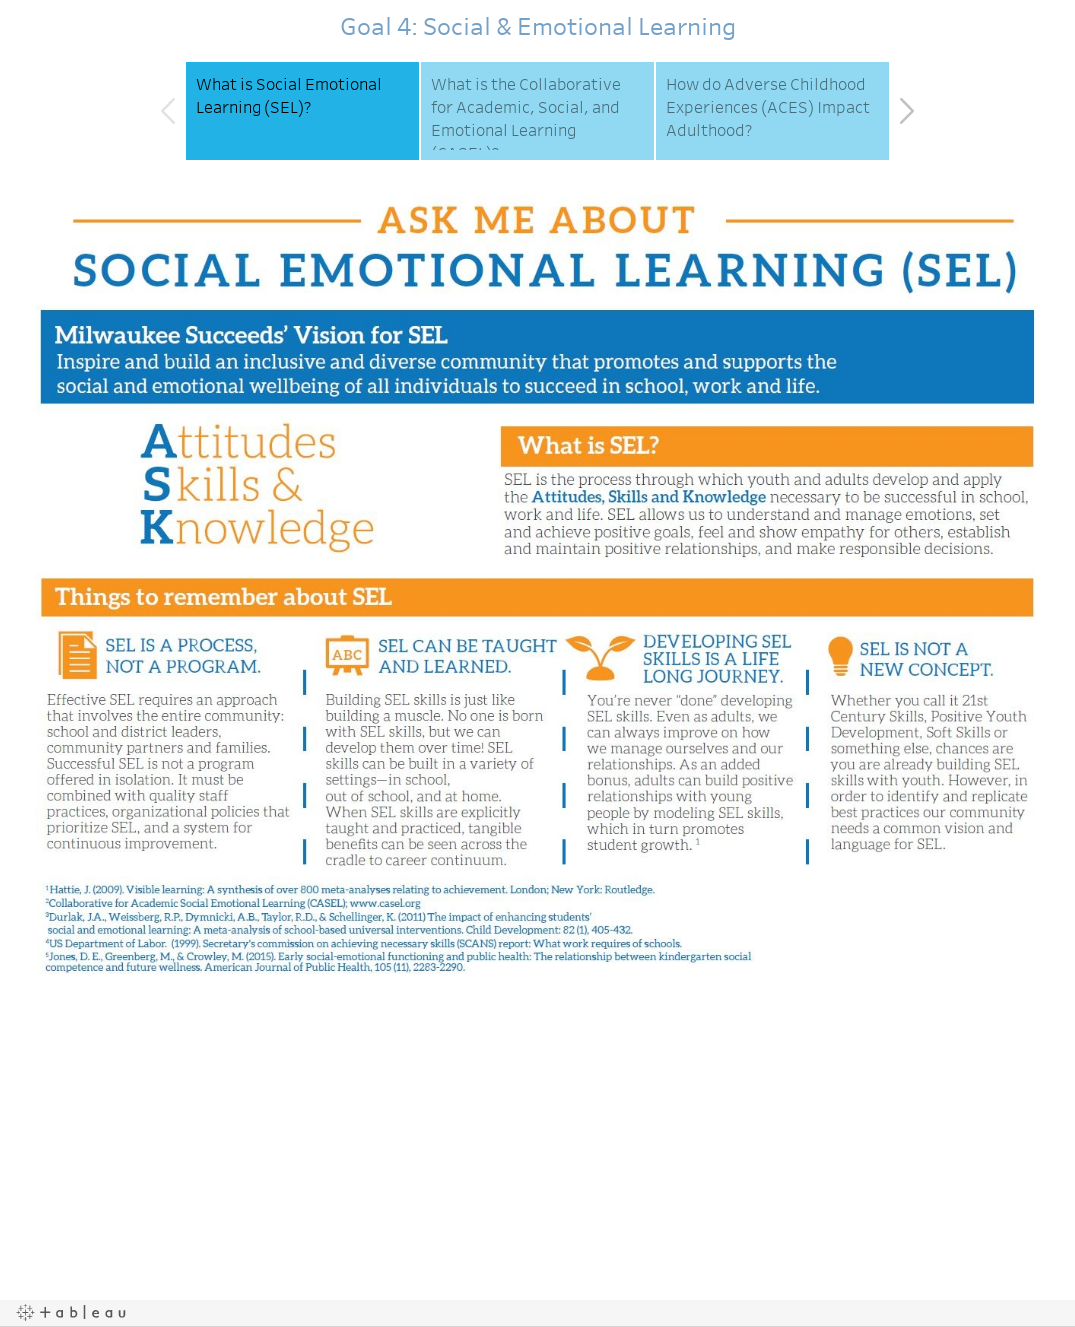 Goal 4: Social & Emotional Learning